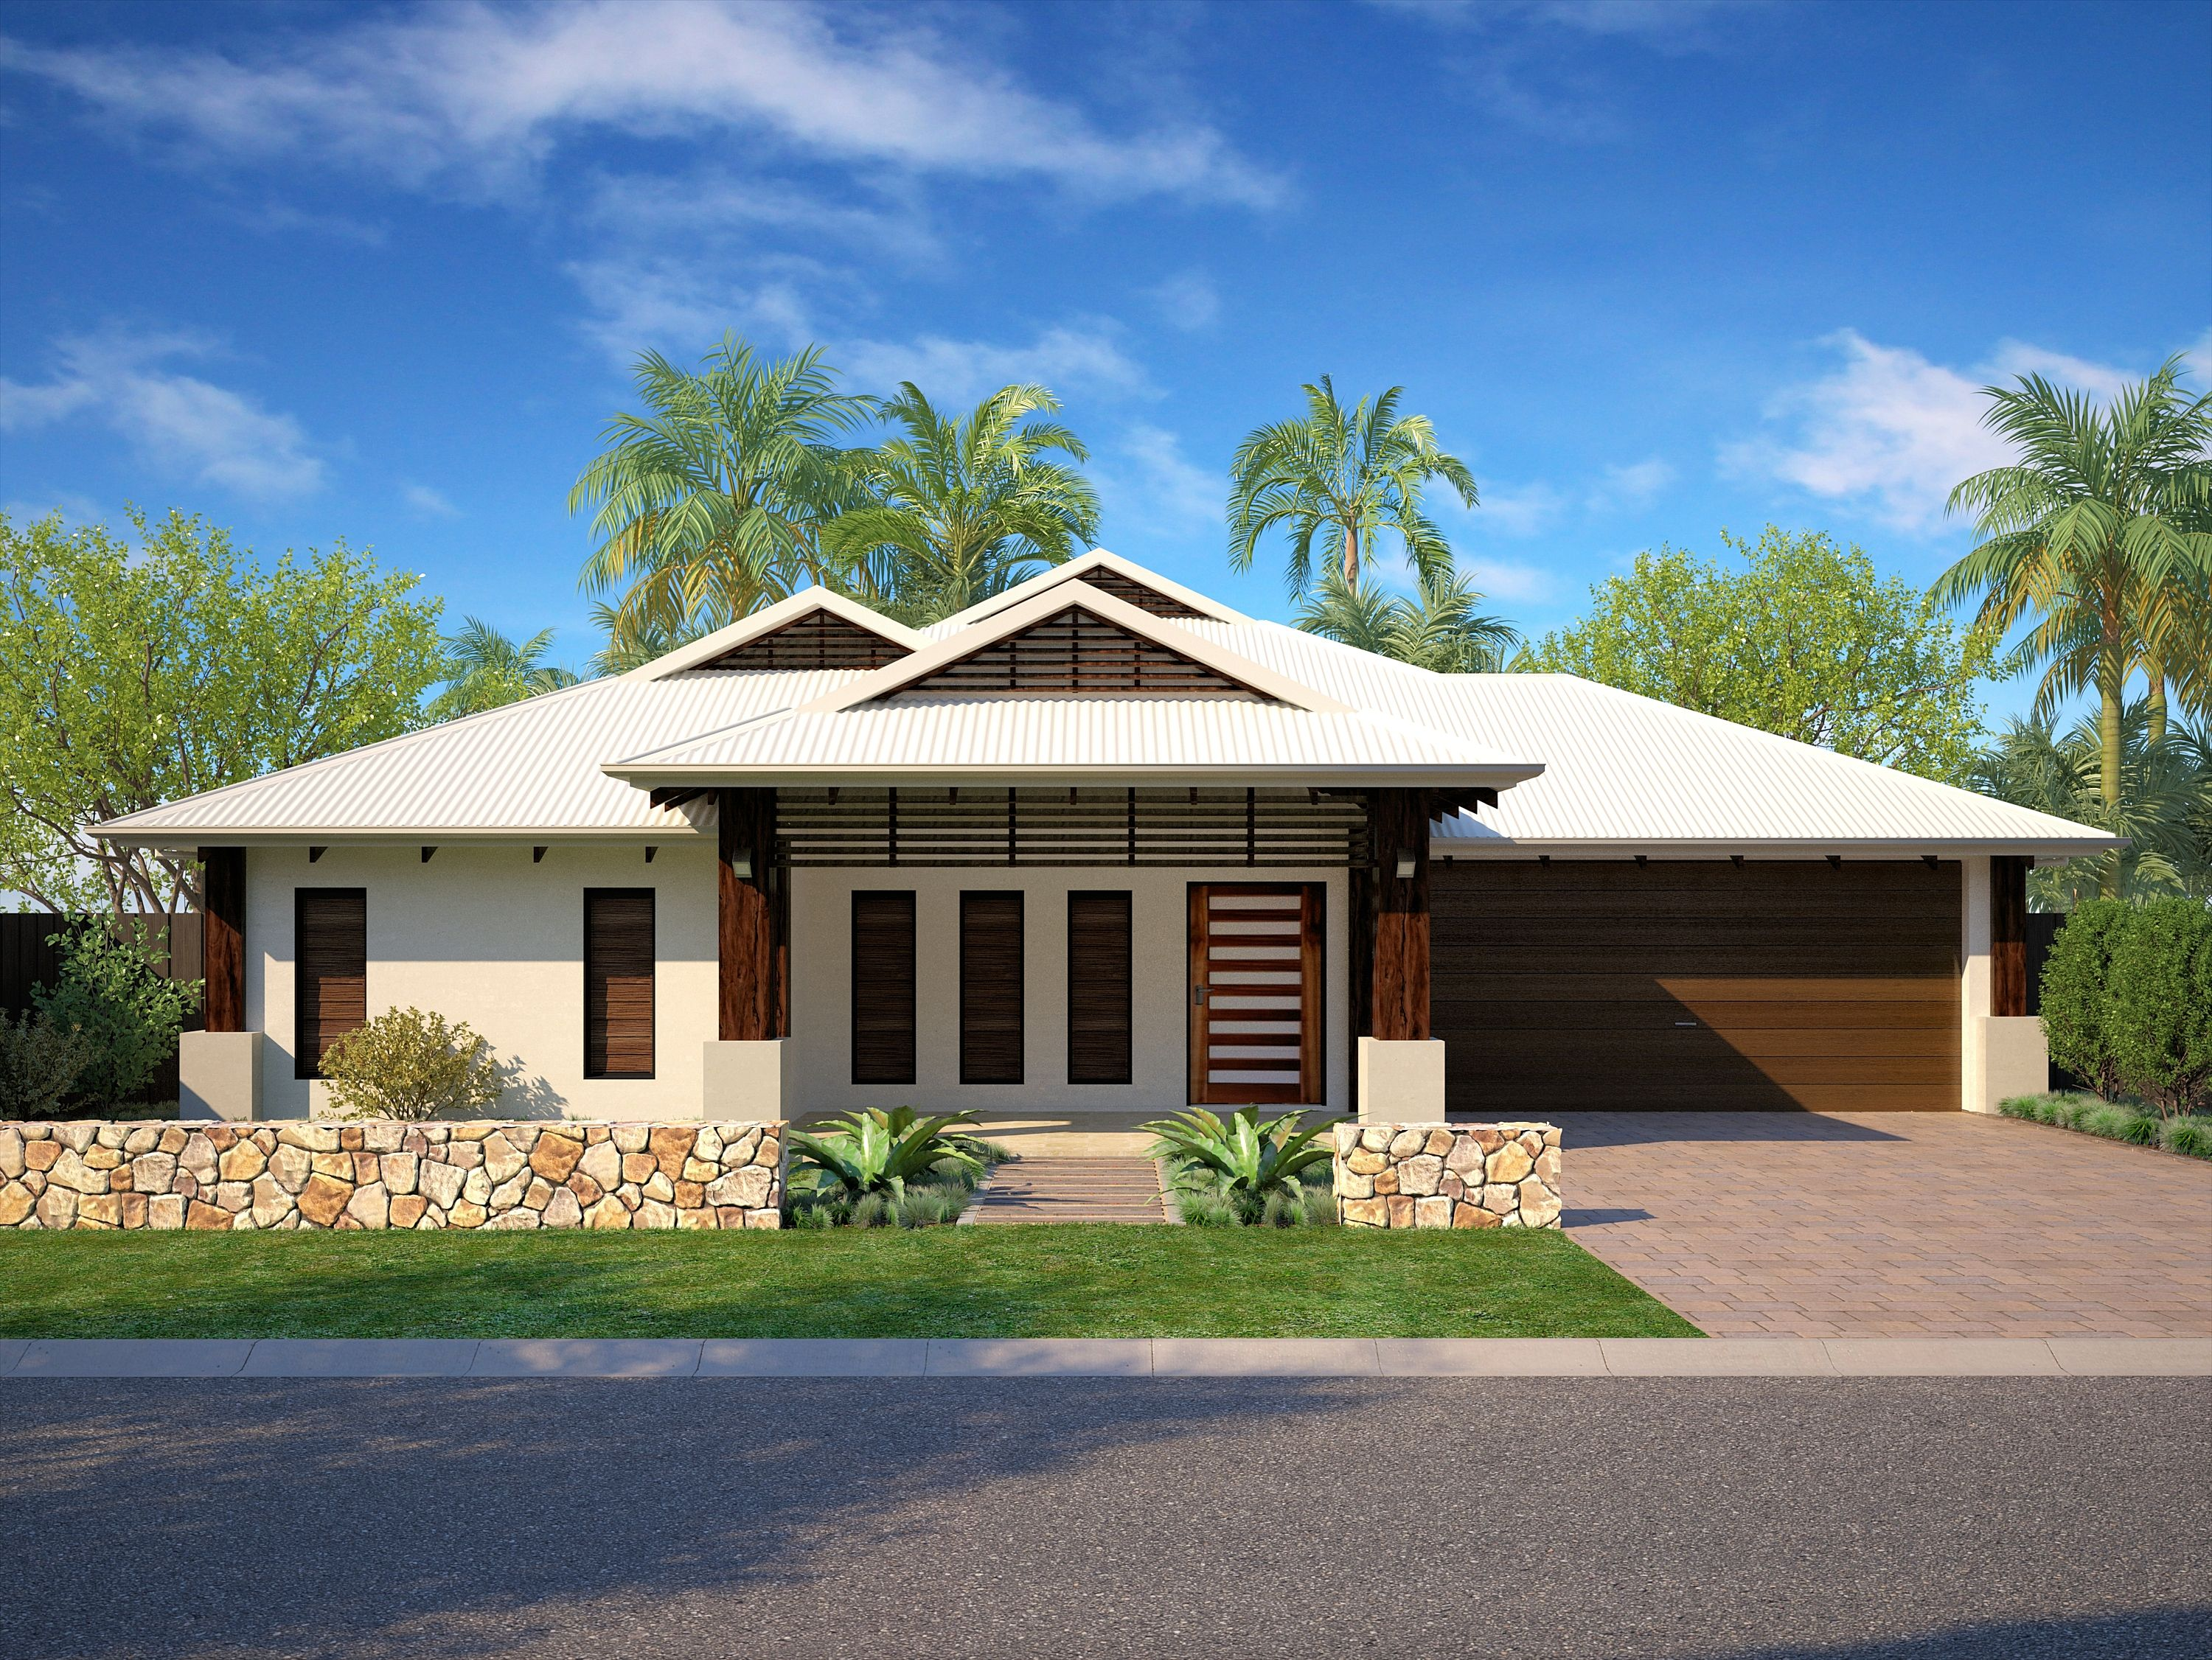 Our Kingston 336 Home Design Visit our